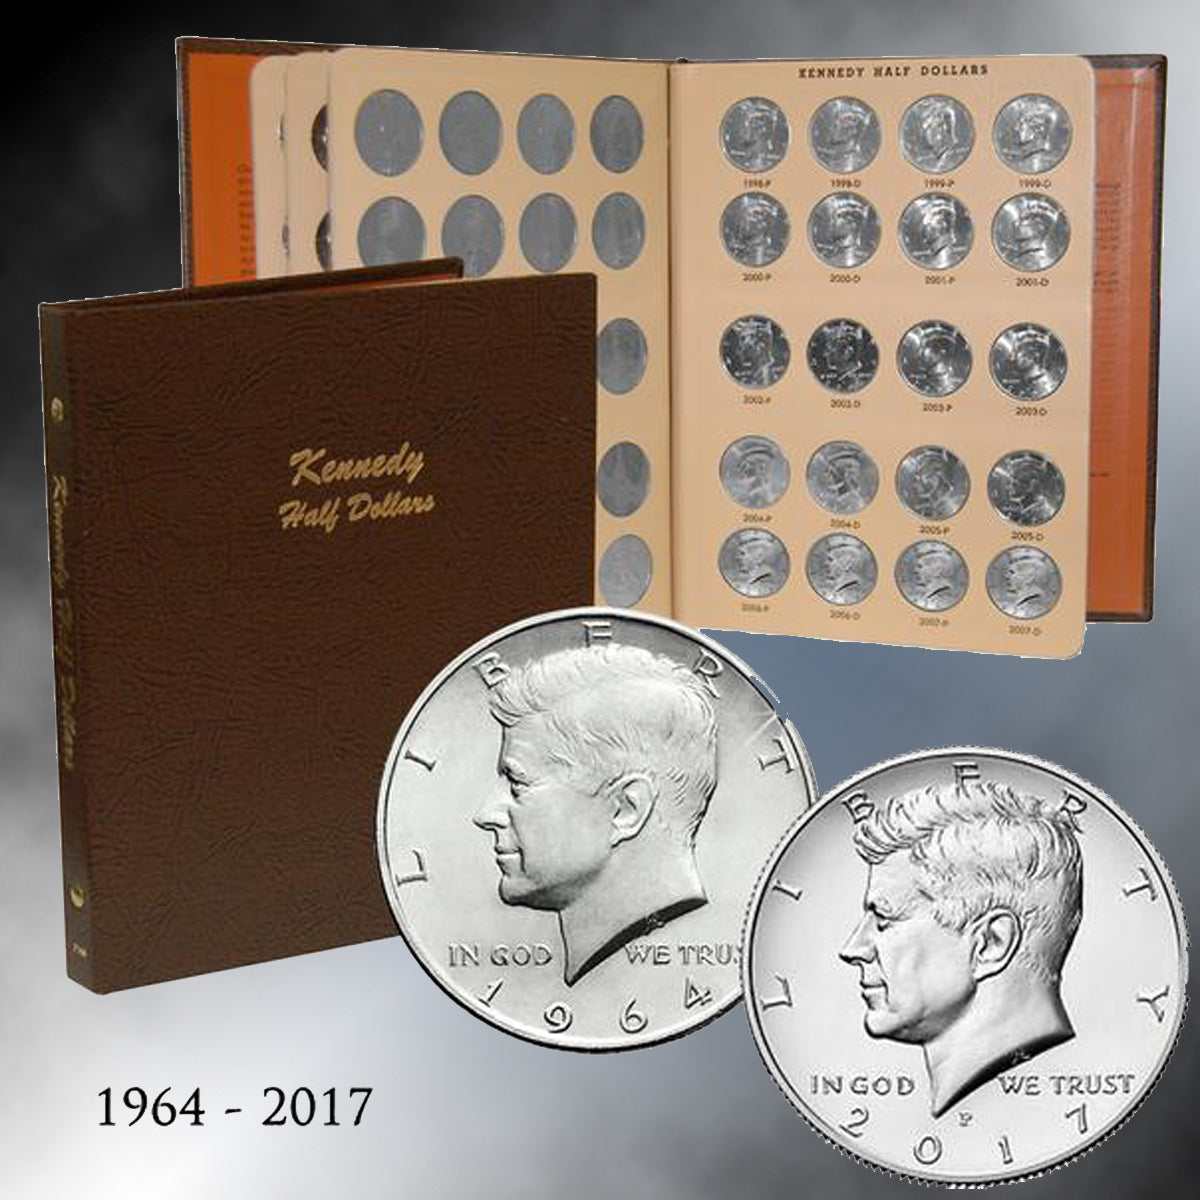 1964 - 2017 JFK Half Dollars in Dansco Album